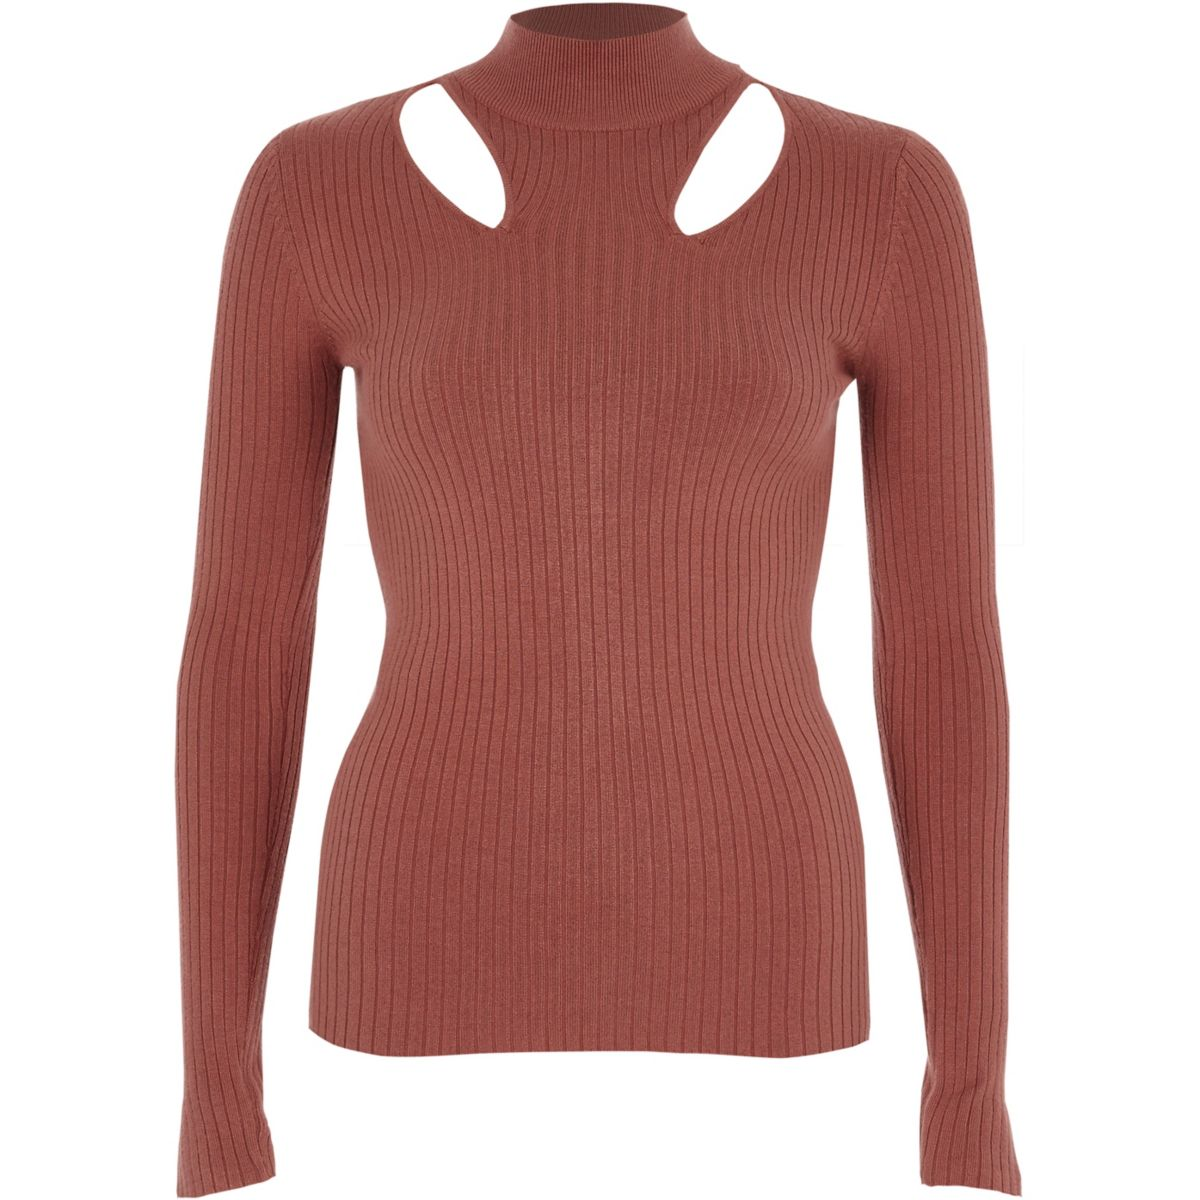 Pink rib knit cut out high neck top